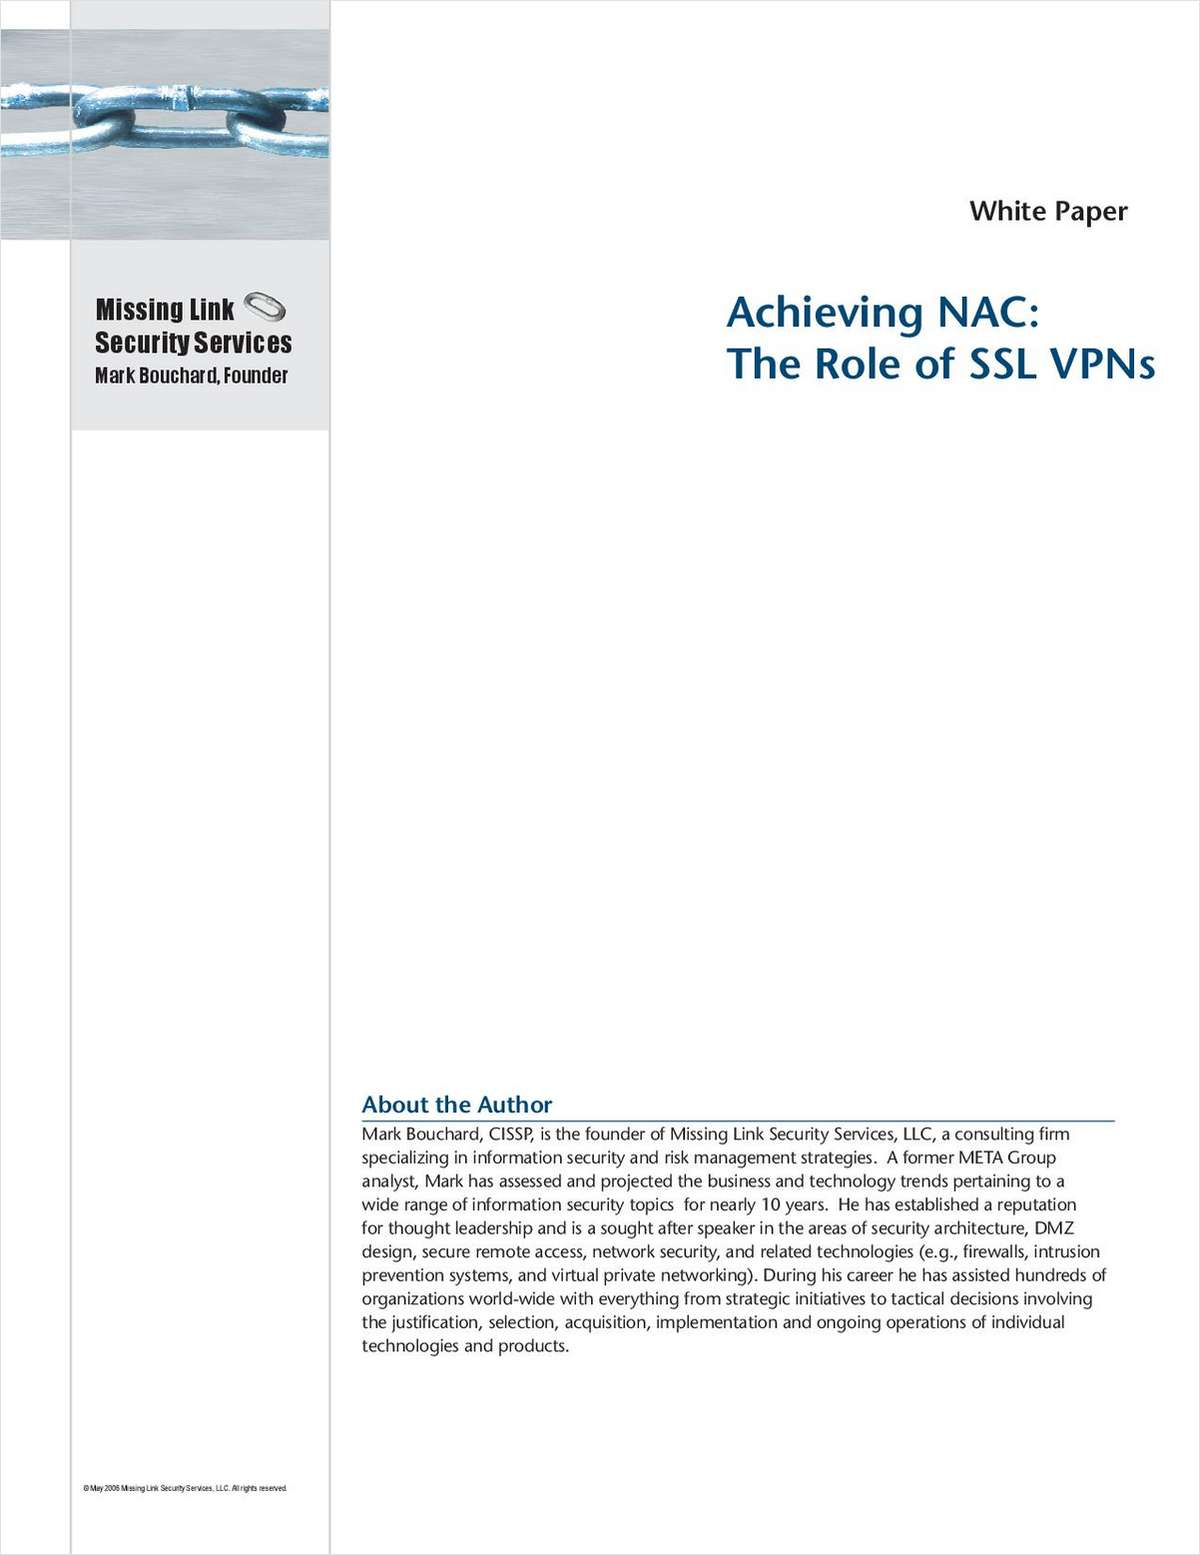 Achieving NAC Now and in the Future: The Role of SSL VPNs